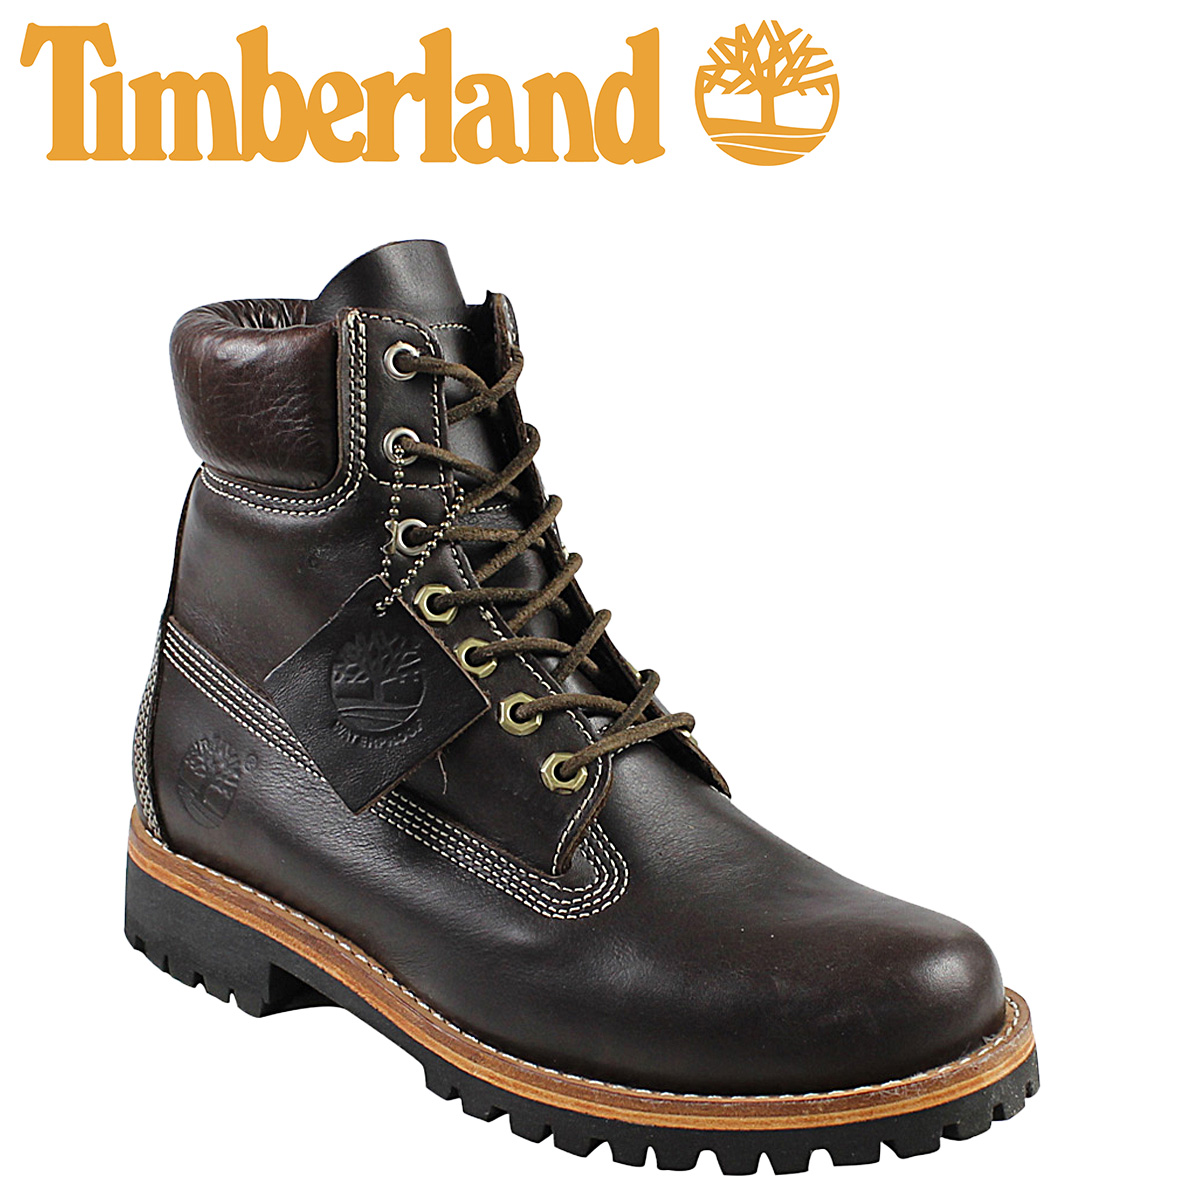 ALLSPORTS  6848ko Brown of timberland EARTHKEEPERS HERITAGE RUGGED BOOT  Timberland mens boots 9411e045975a